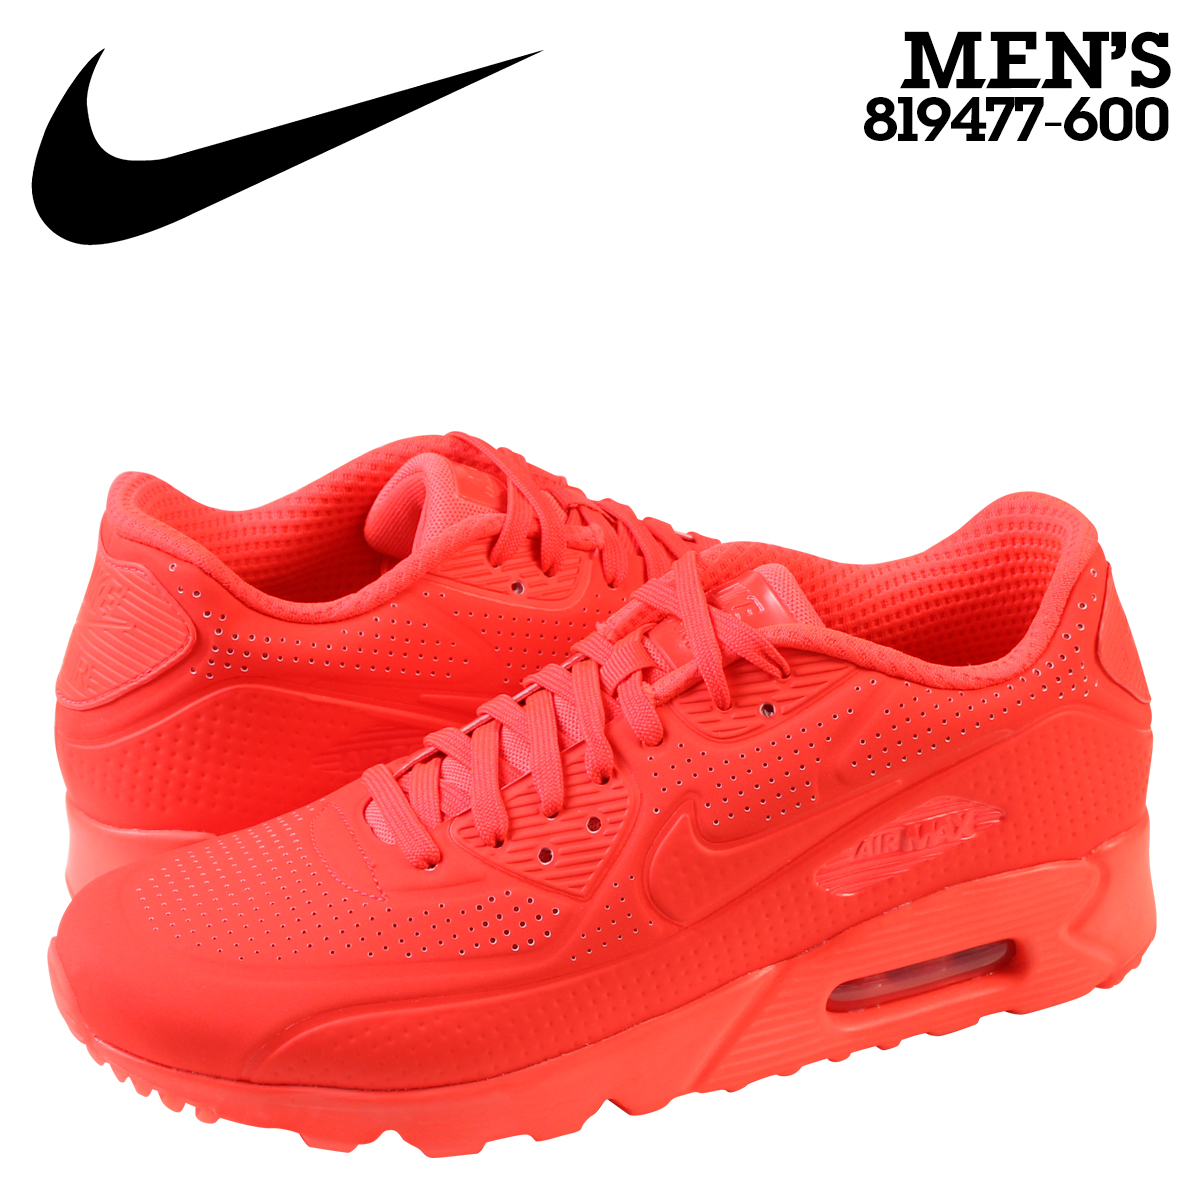 NIKE Kie Ney AMAX sneakers AIR MAX 90 ULTRA MOIRE Air Max 90 ultra moire 819,477 600 crimson men shoes red